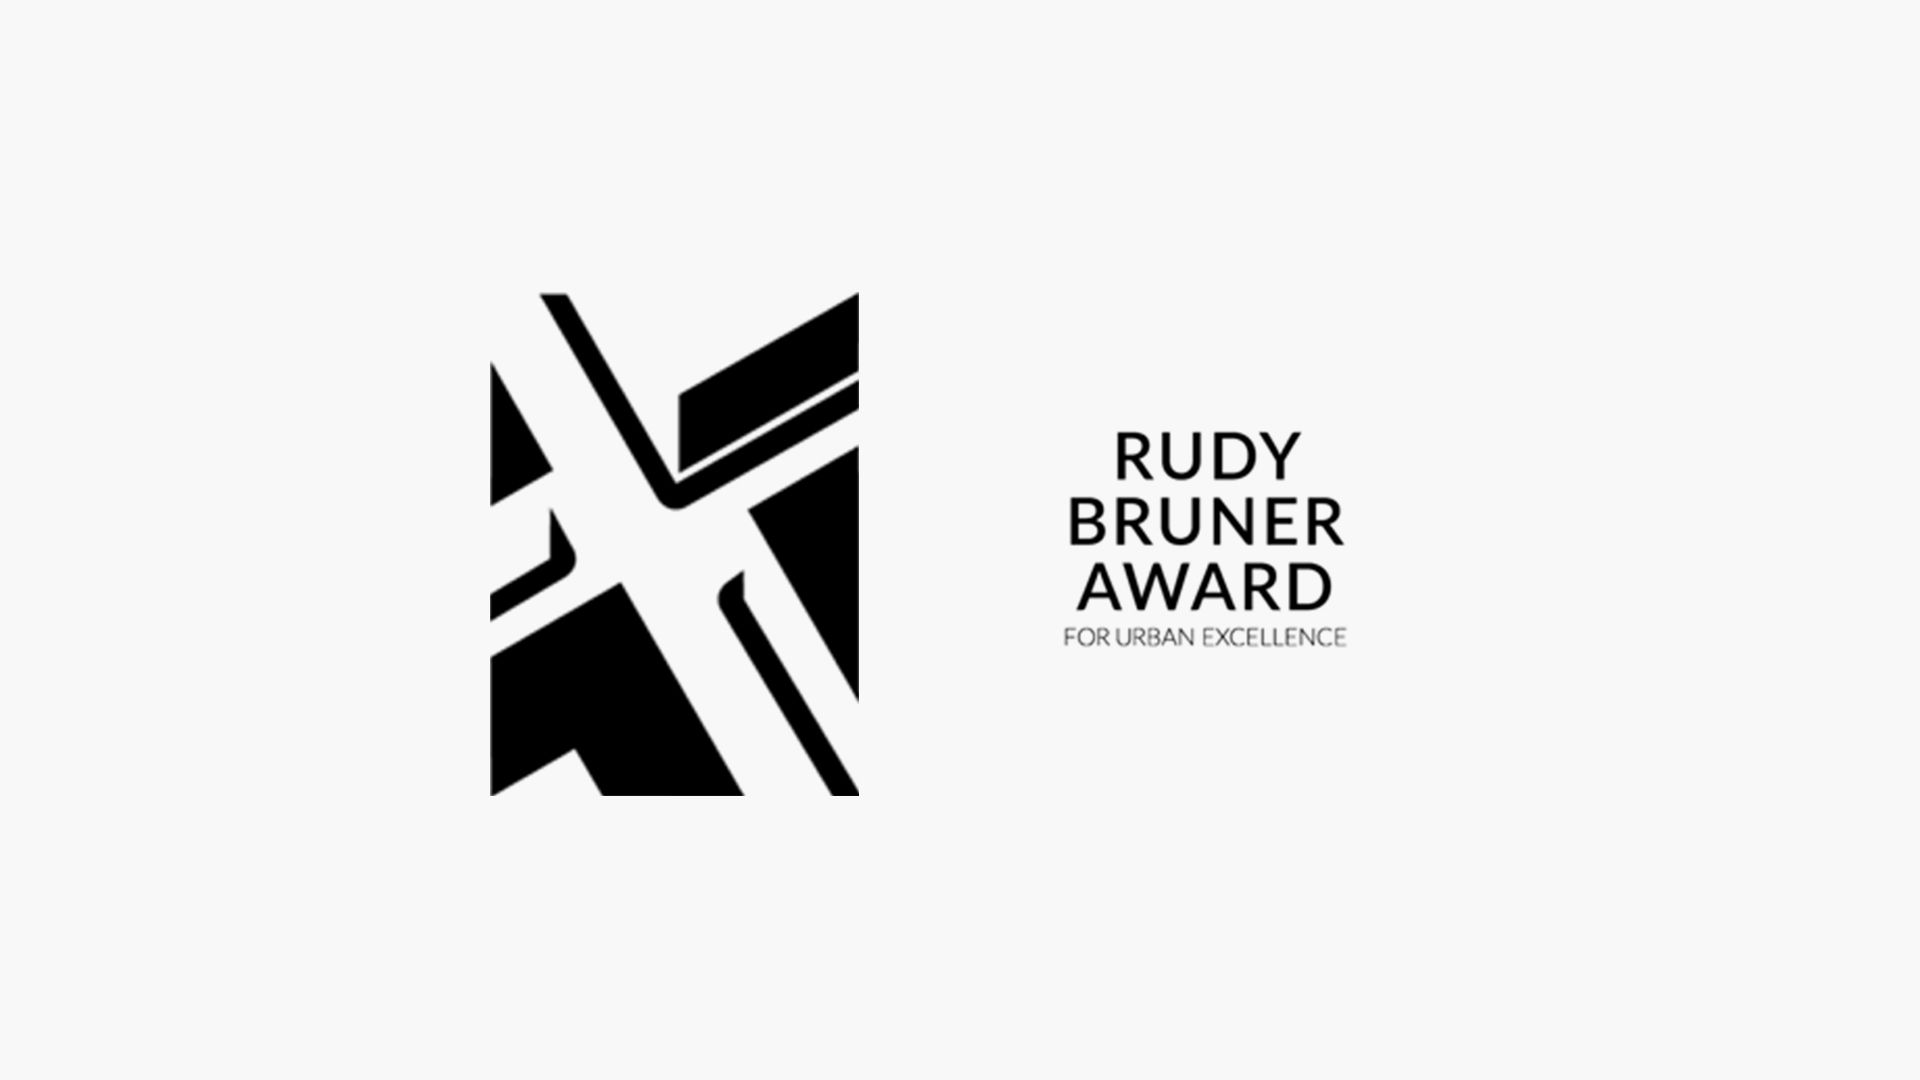 Rudy Bruner Award for Urban Excellence